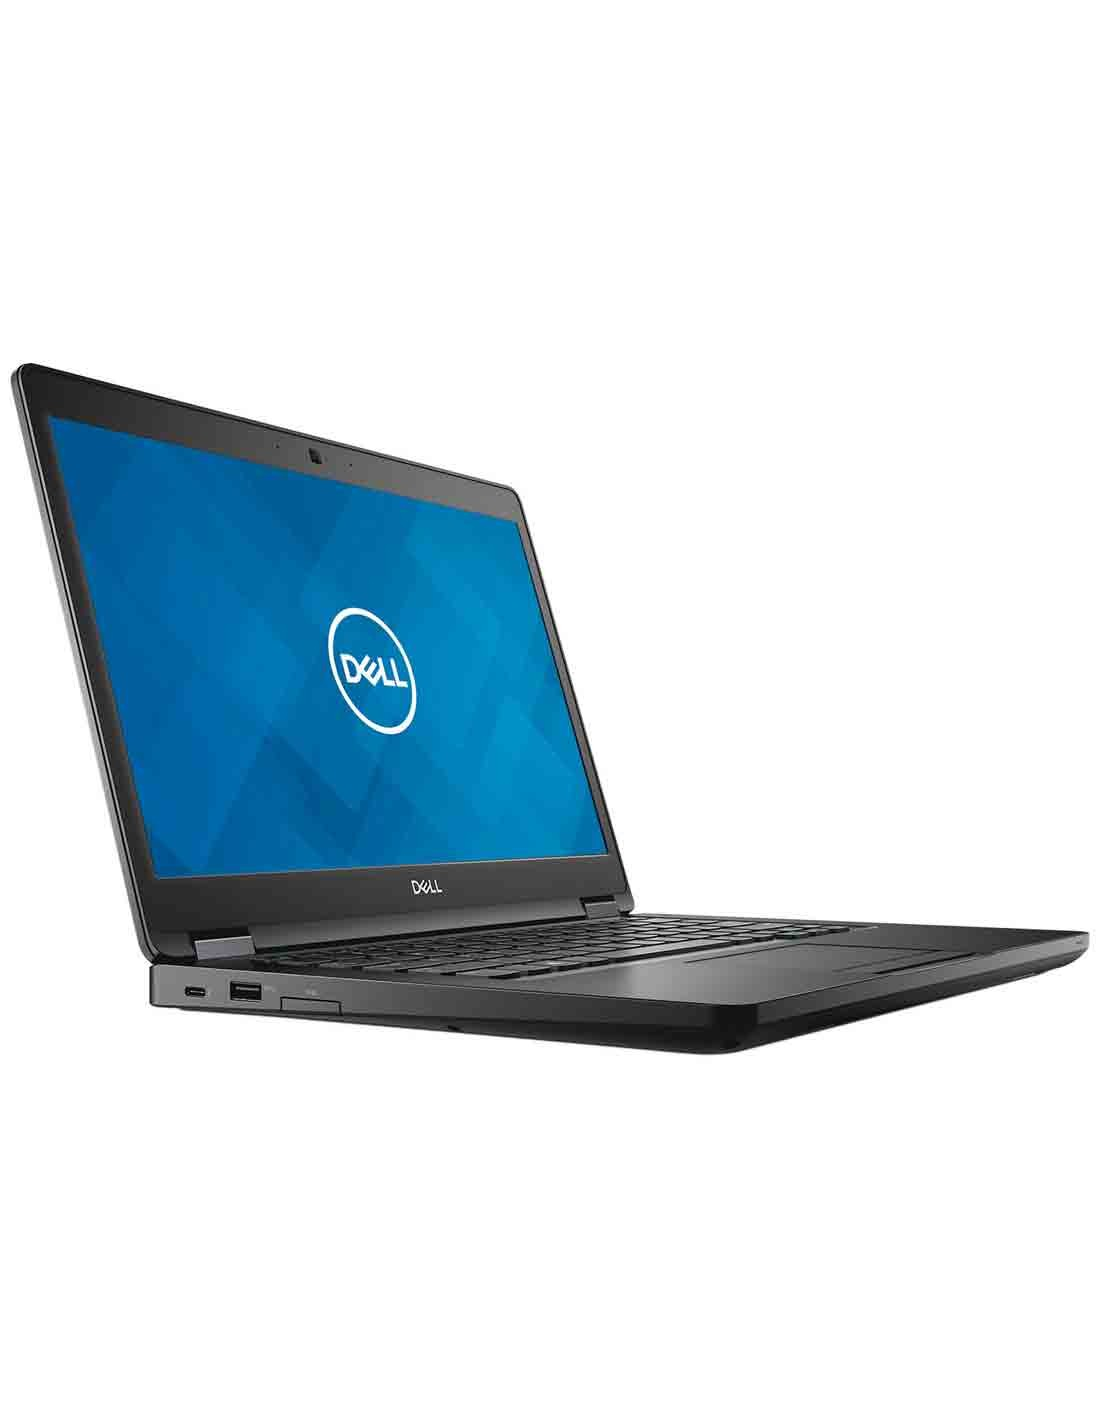 Dell Latitude 5490 Laptop i7 at the cheapest price and fast free delivery in Dubai UAE